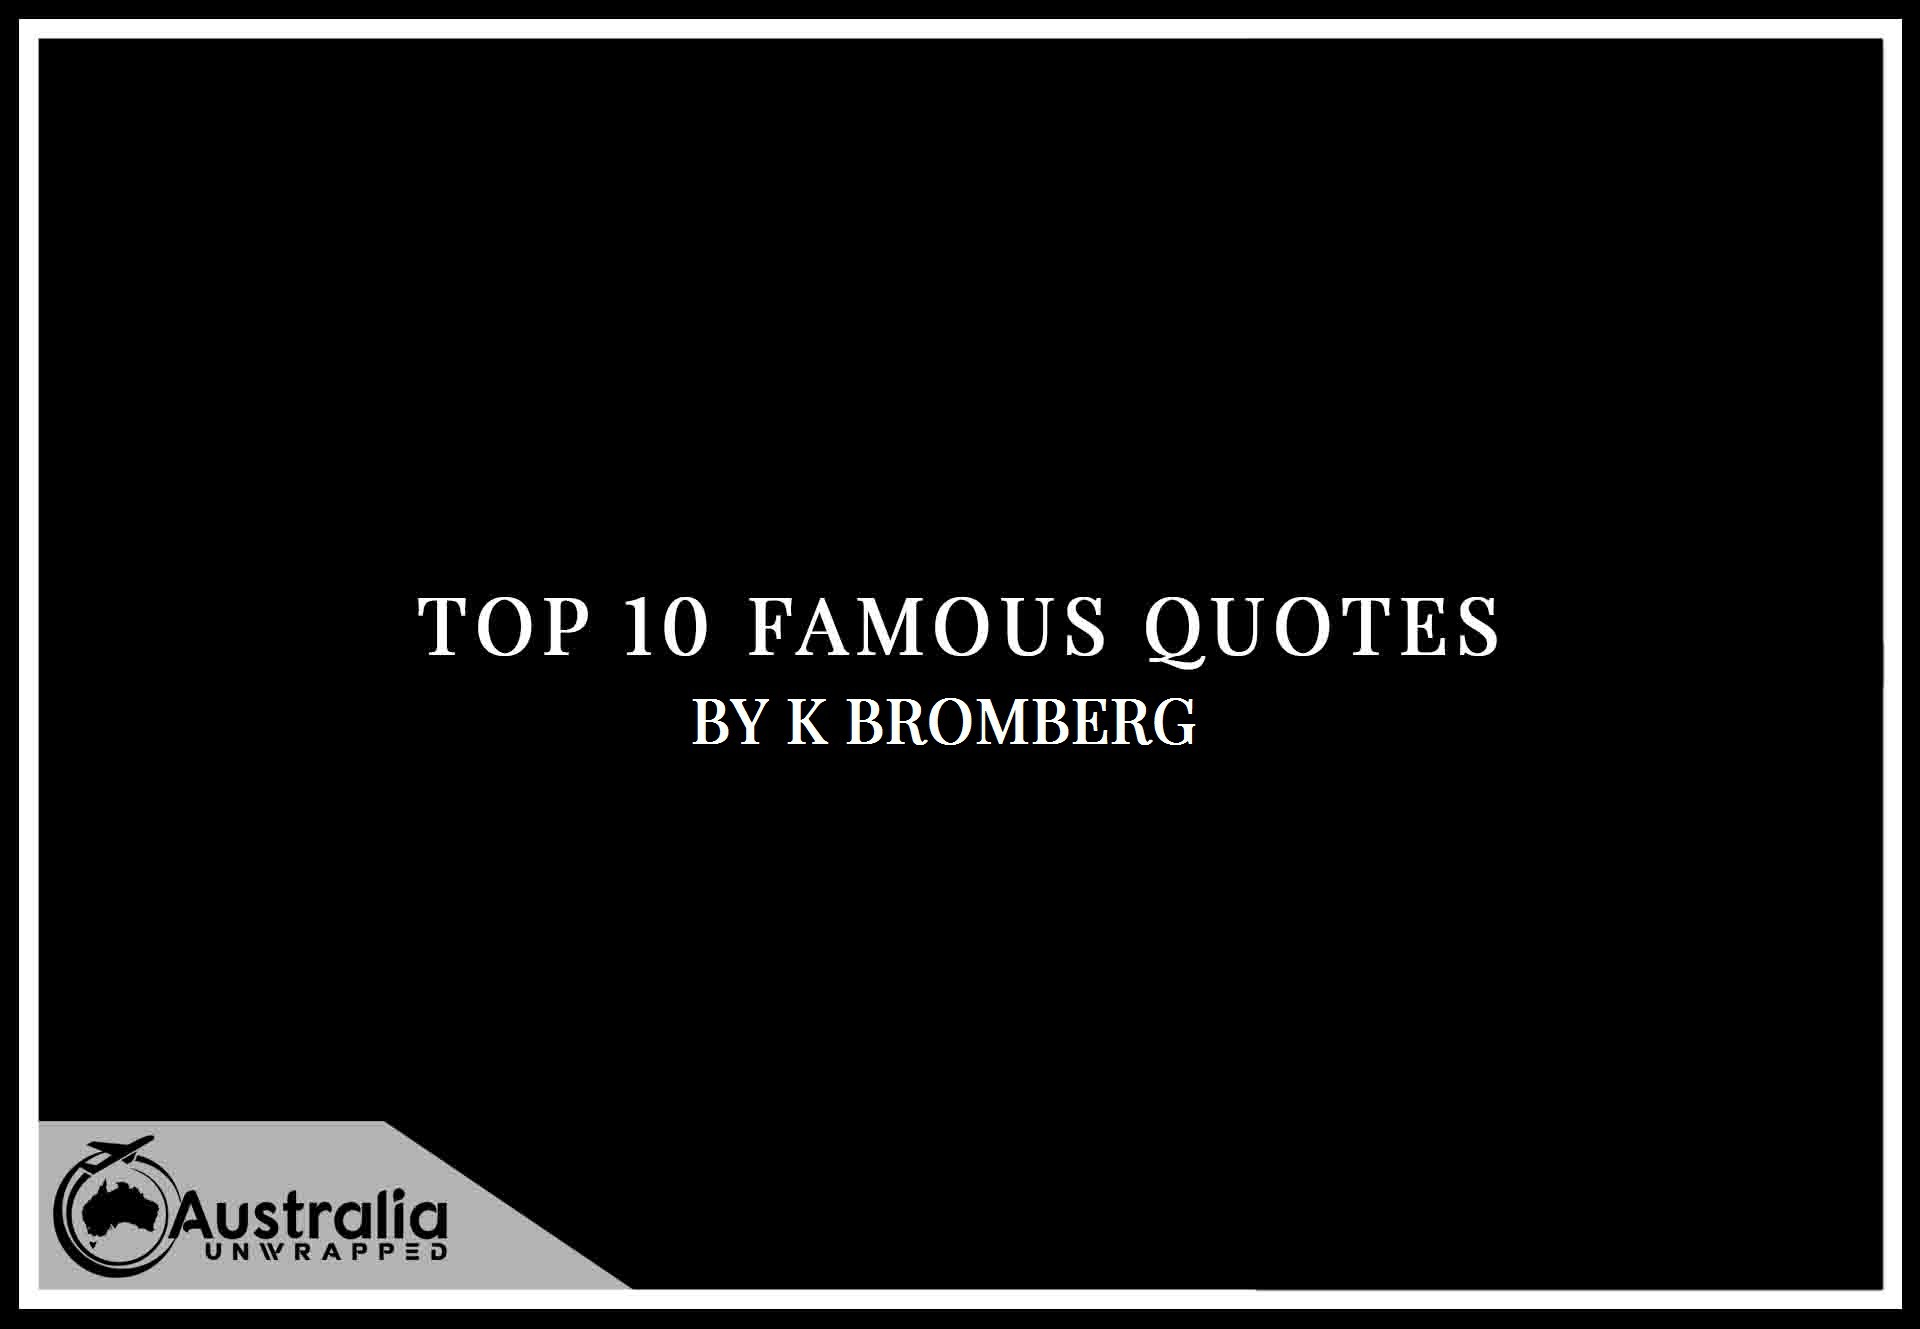 K. Bromberg's Top 10 Popular and Famous Quotes